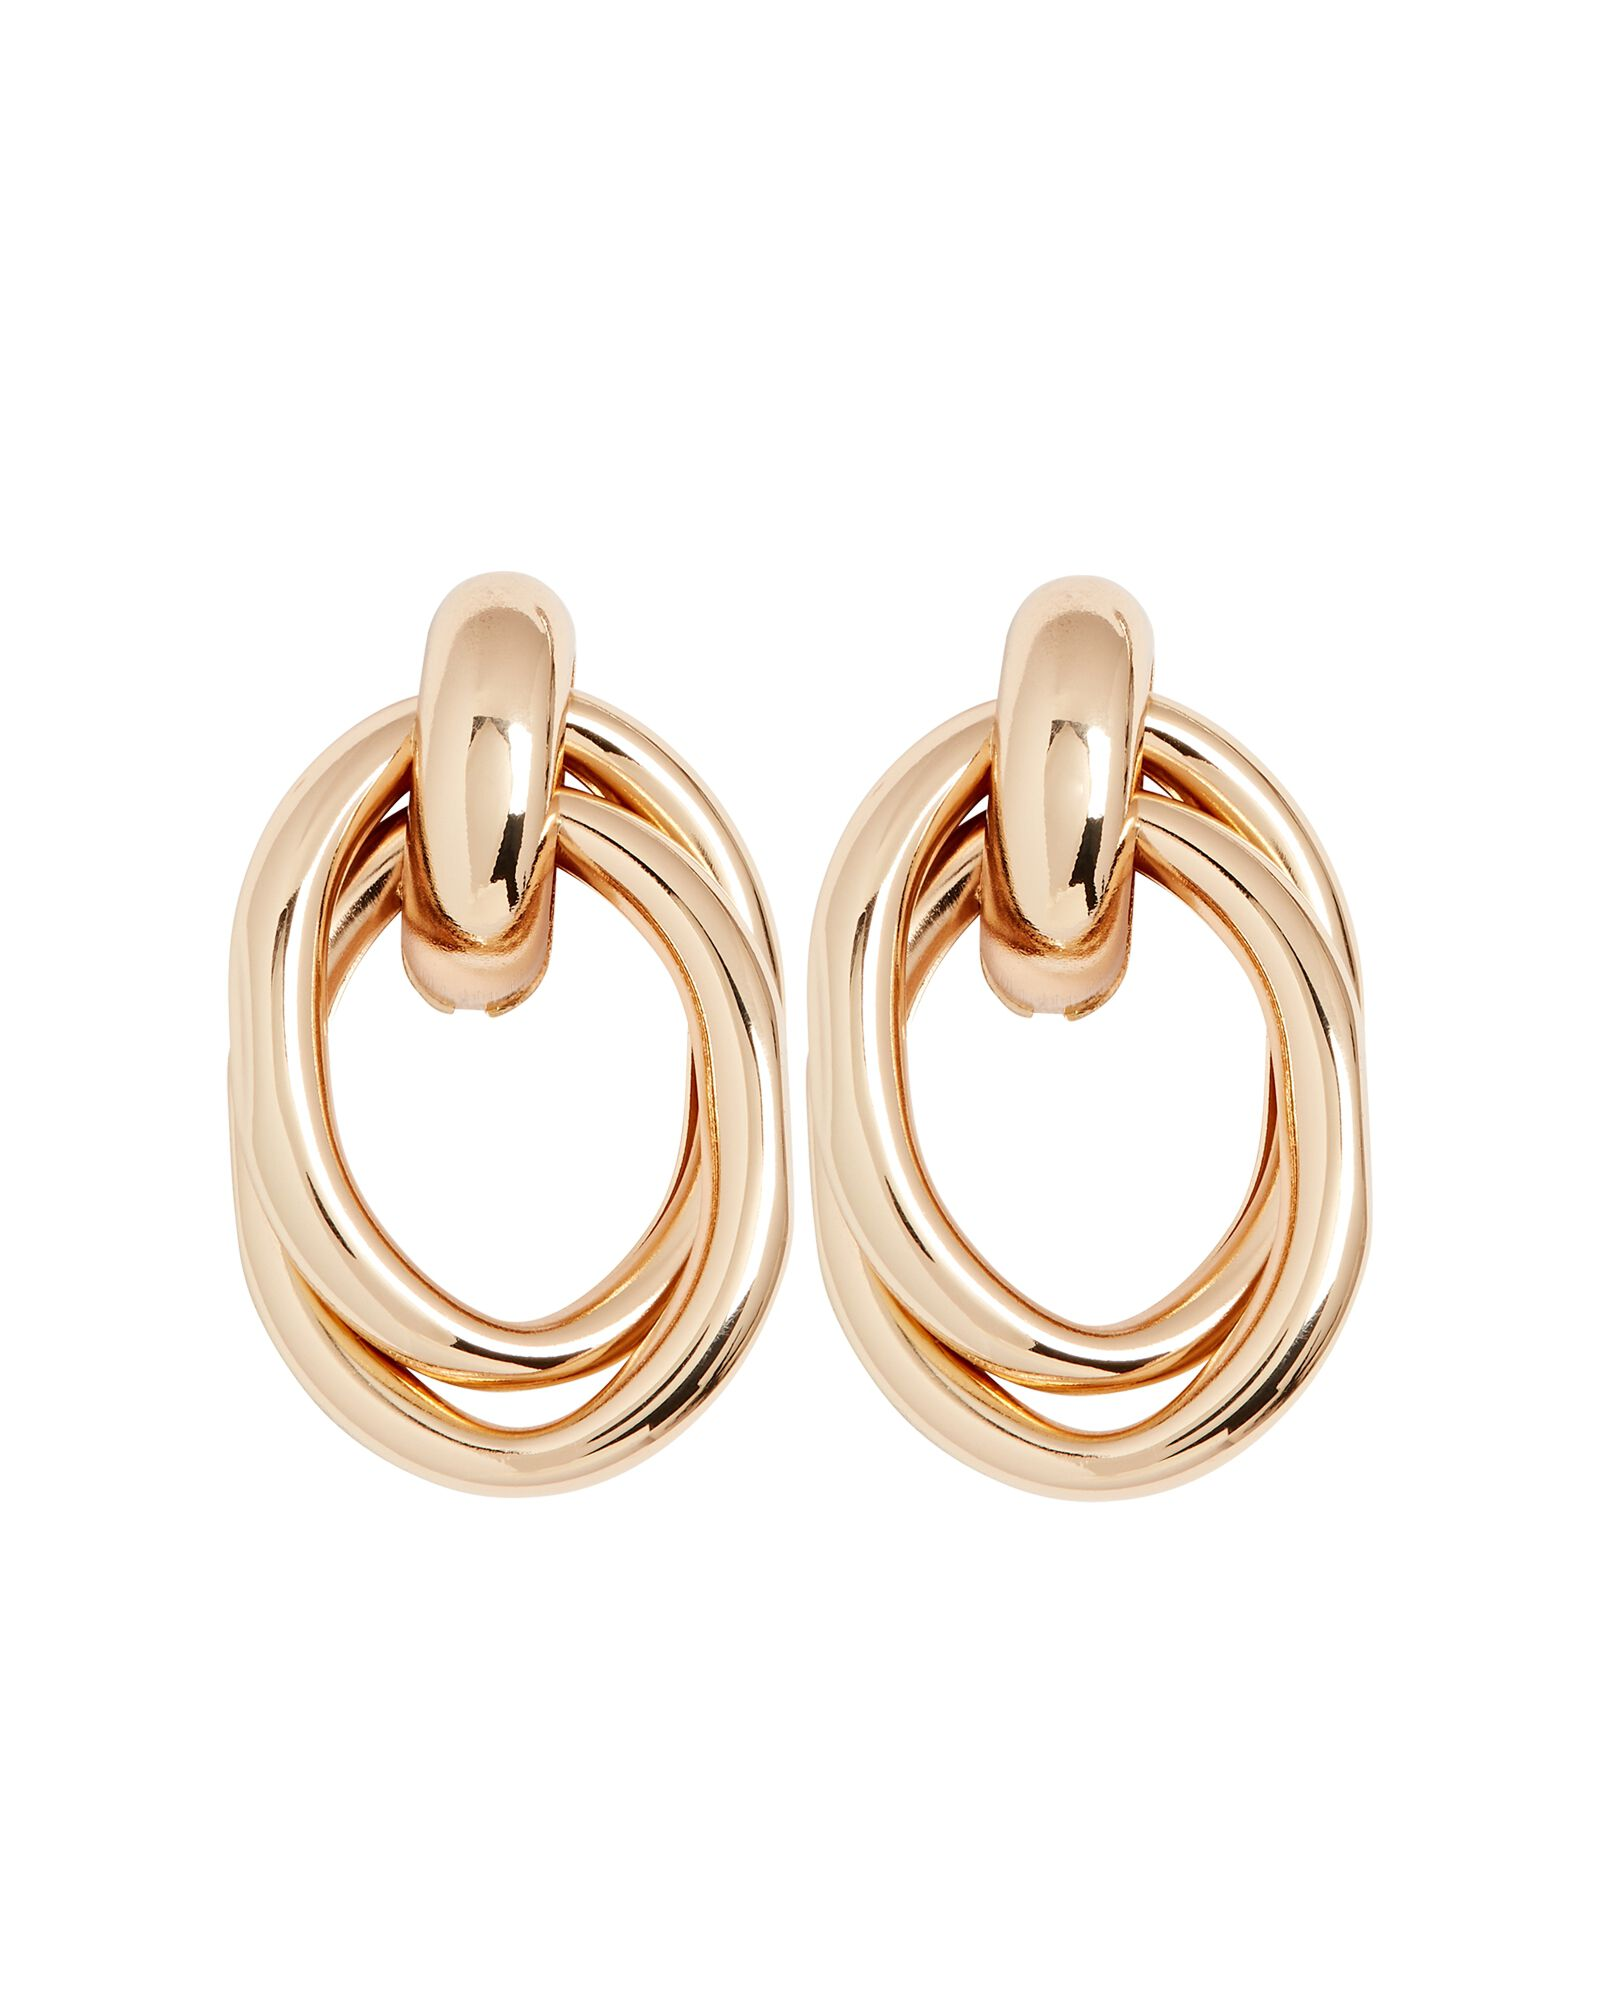 Sadie Interlocking Hoop Stud Earrings, GOLD, hi-res